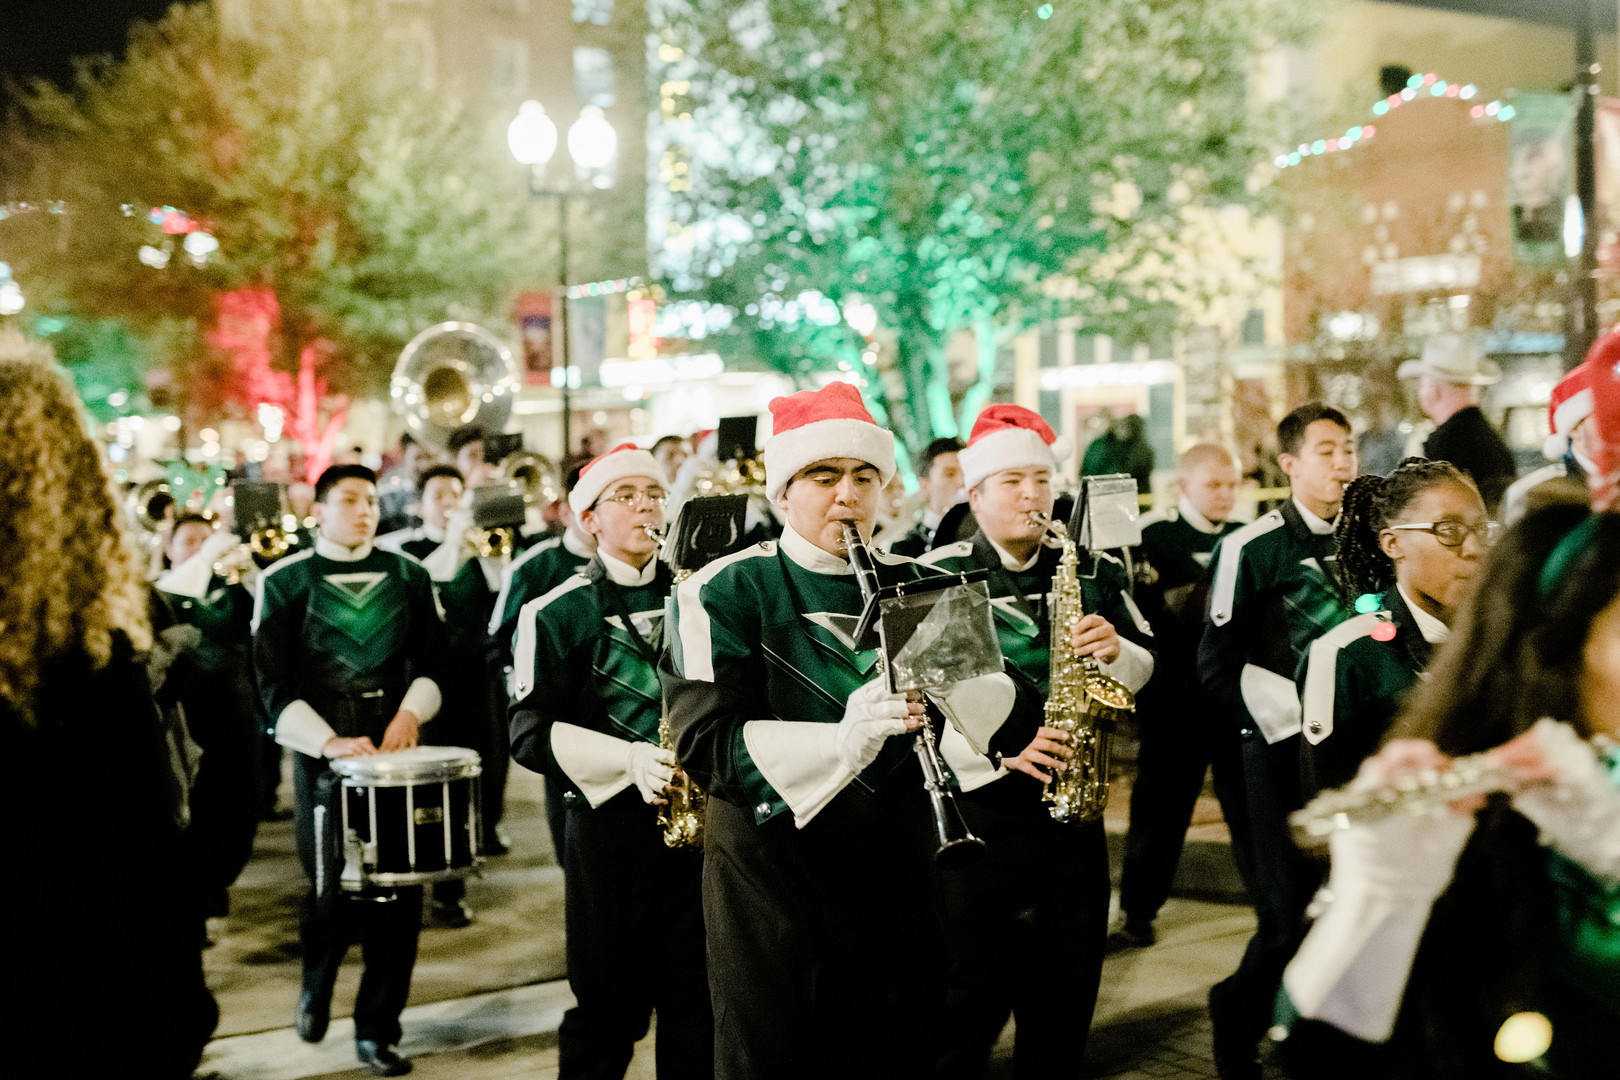 Downtown-Bryan-Christmas-Parade-2018-46.